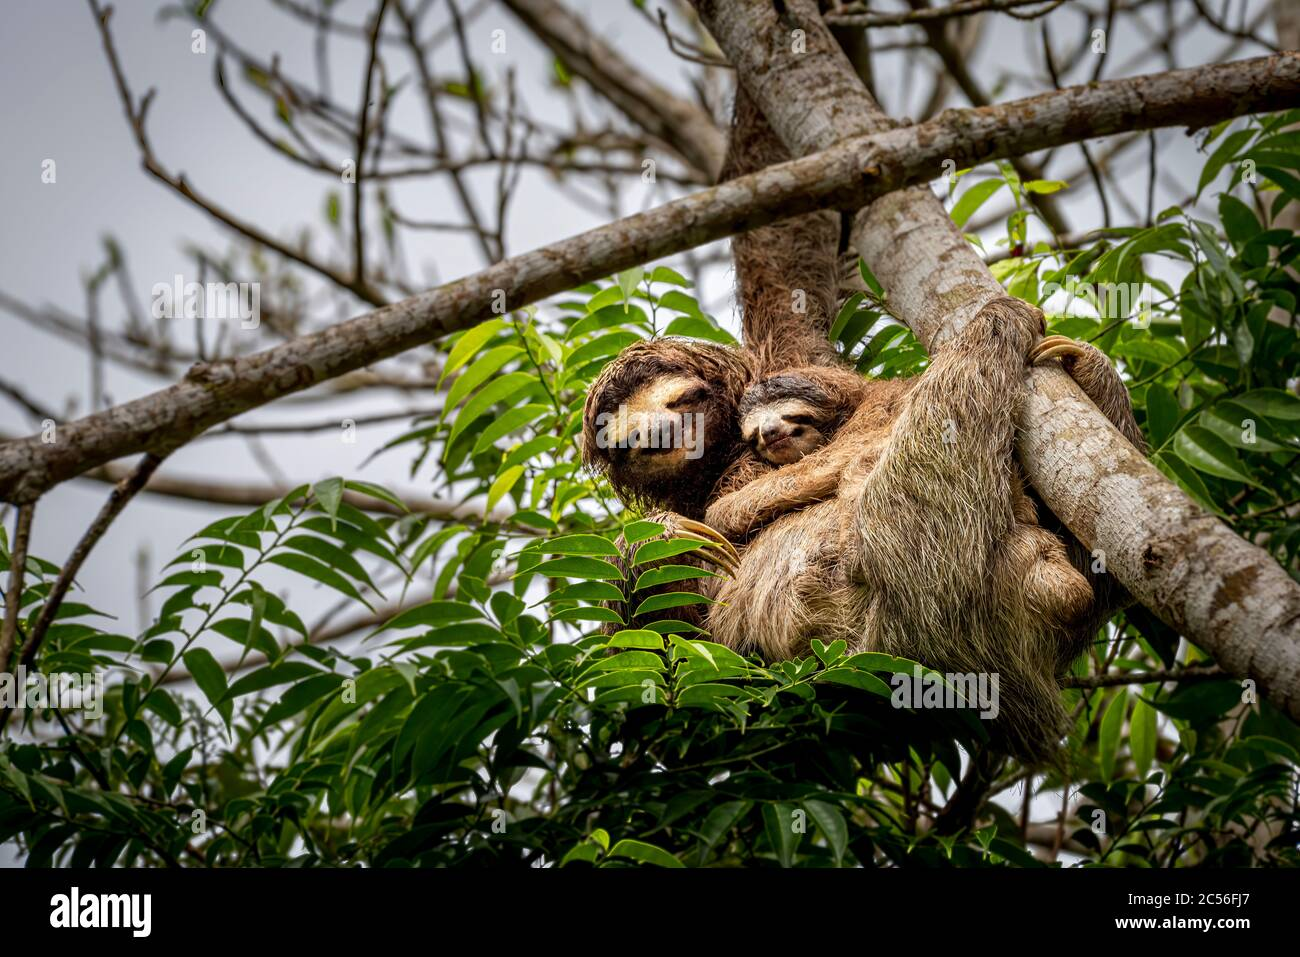 3 toed sloth with baby climbing up a tree image taken in the rain forest of Panama Stock Photo